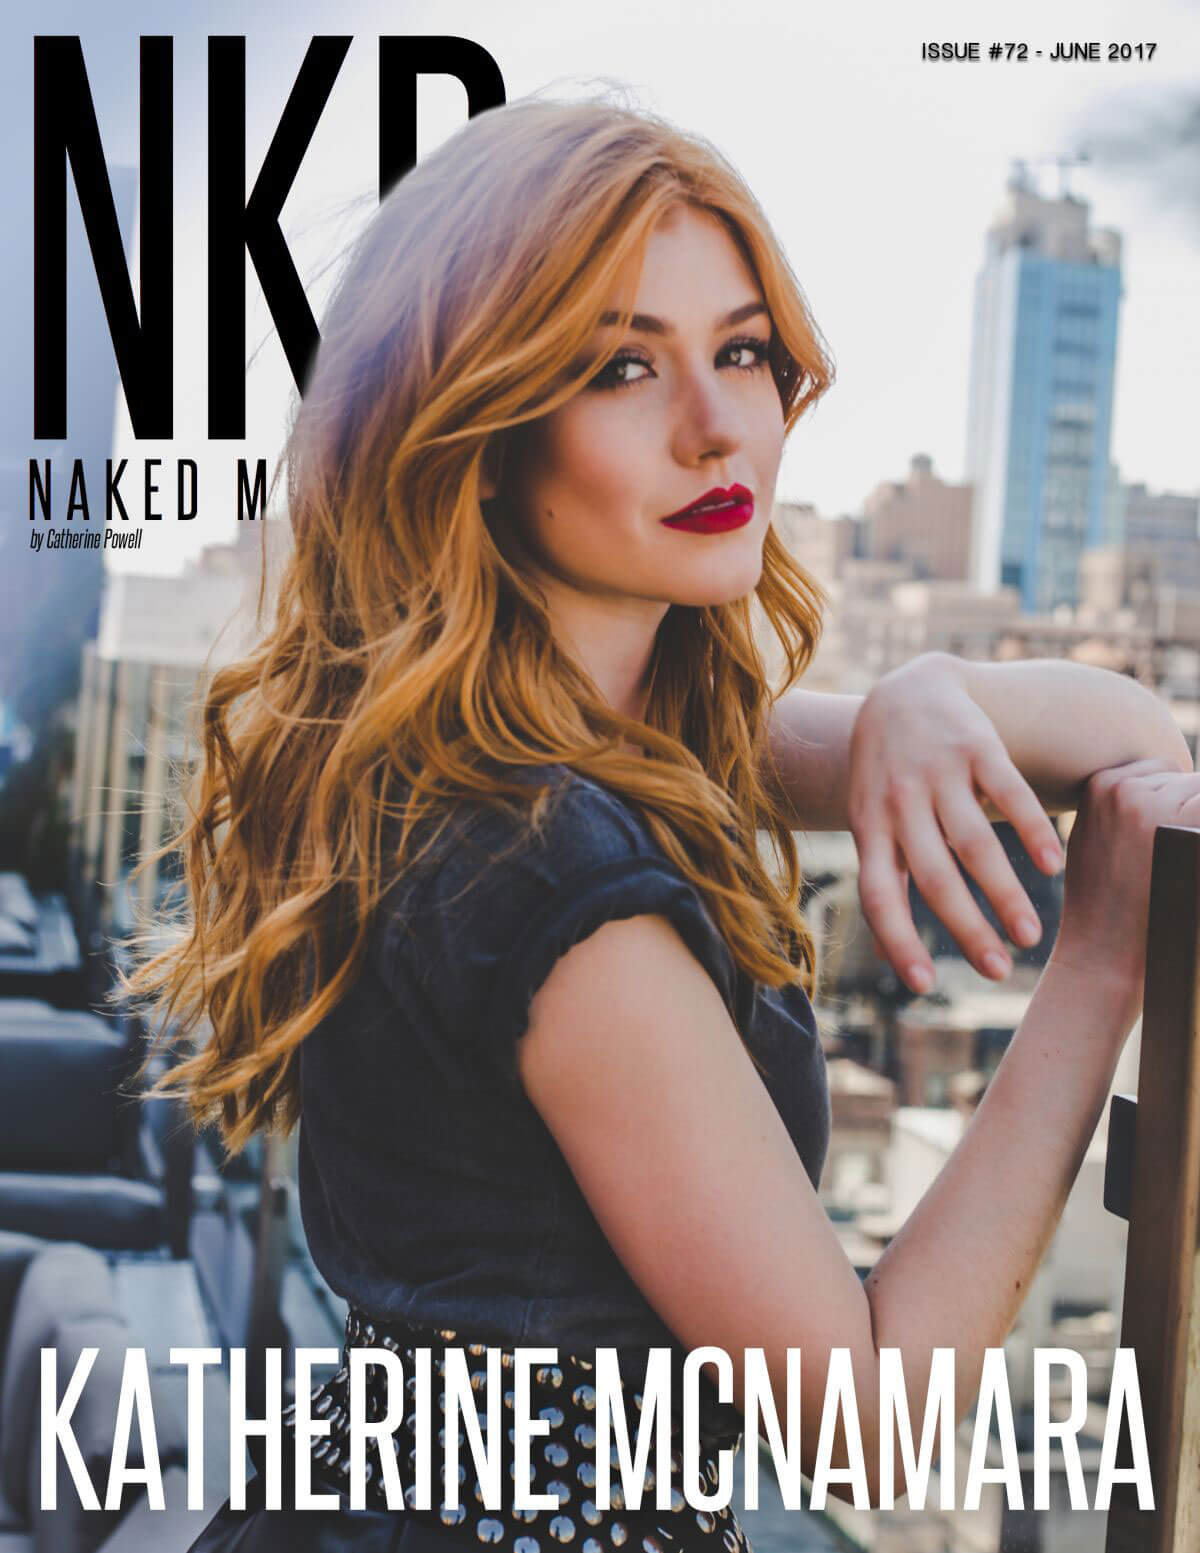 Katherine McNamara Stills in NKD Magazine, Issue #72 June 2017